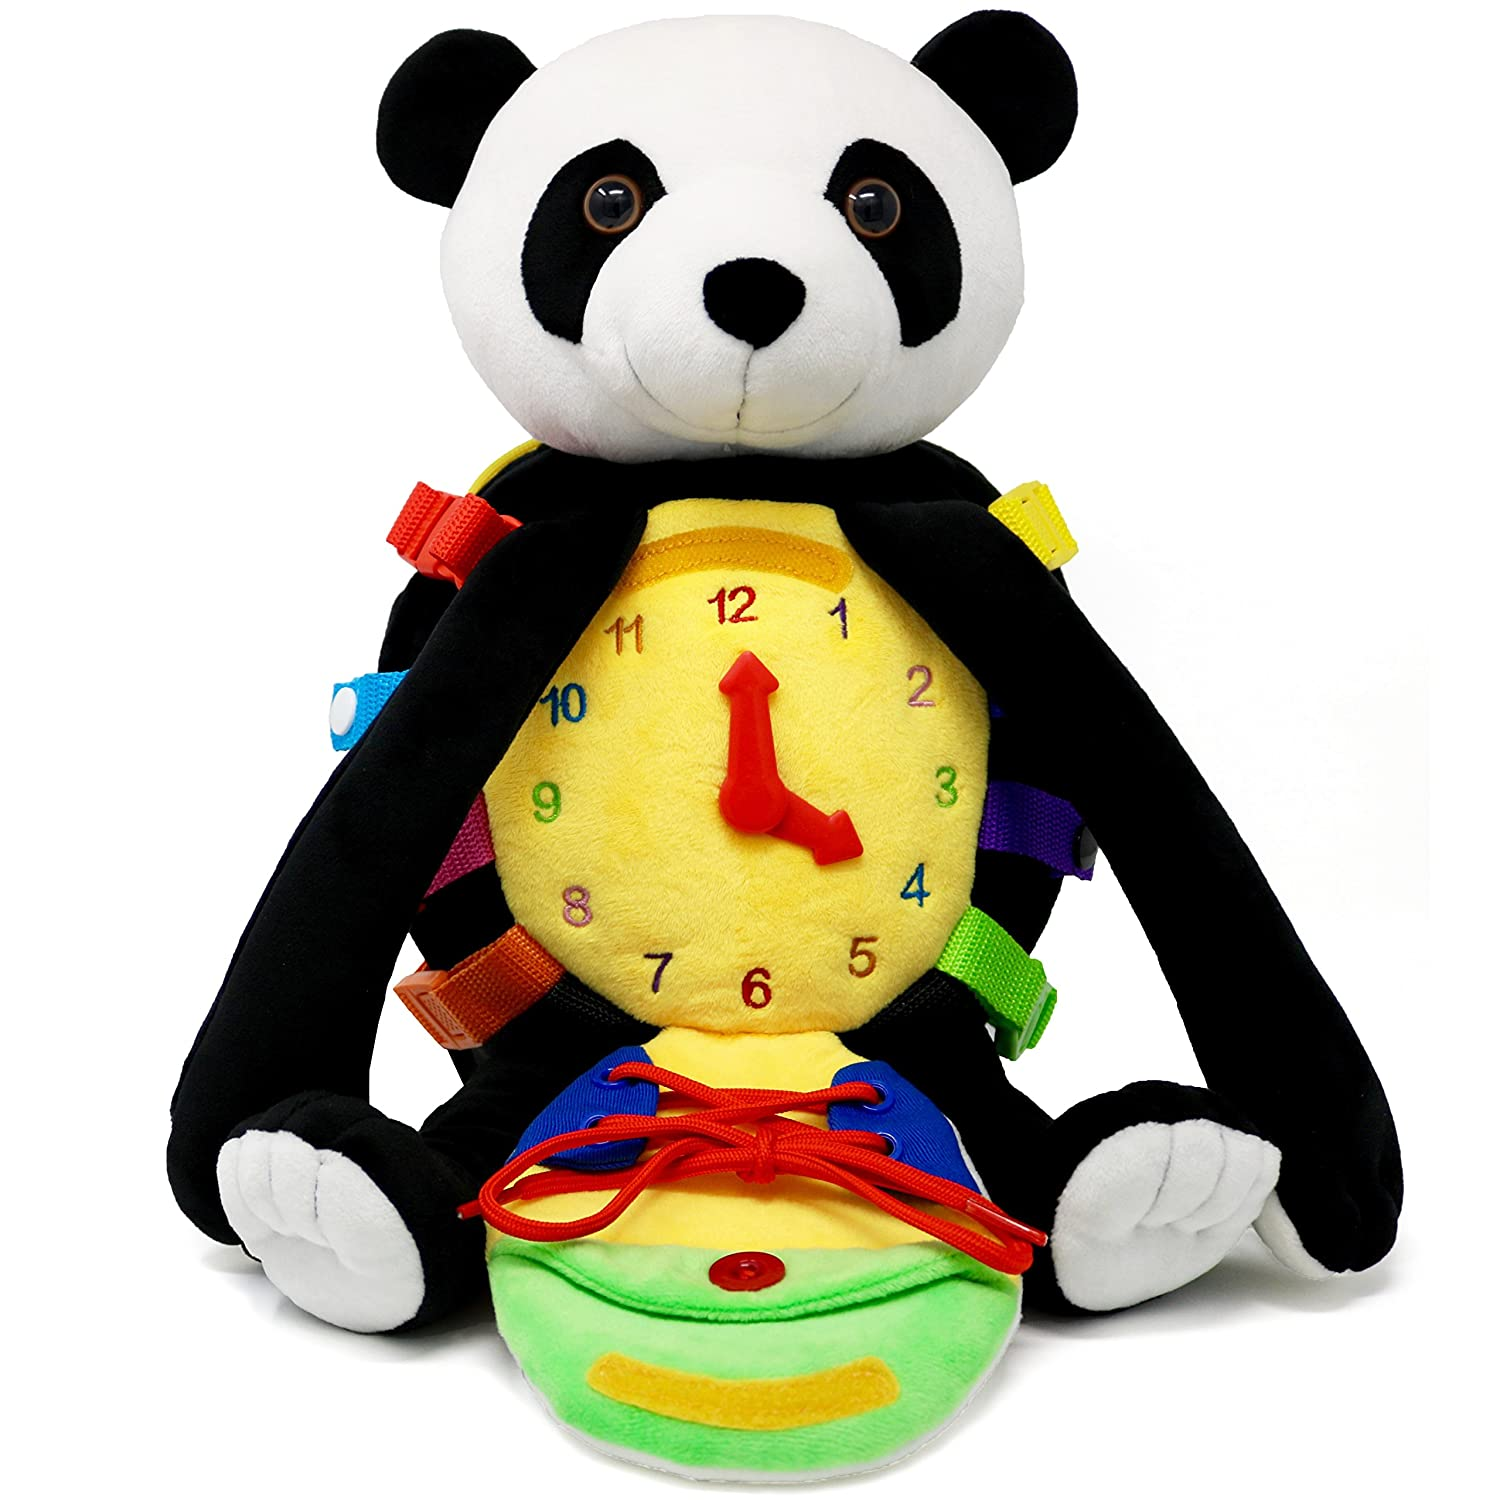 "BUCKLE TOY ""Bamboo"" Backpack Panda – Toddler Life Skills Plush Travel Activity. Learn to Snap, Zip, Button, Tell Time, Tie Shoes and more"